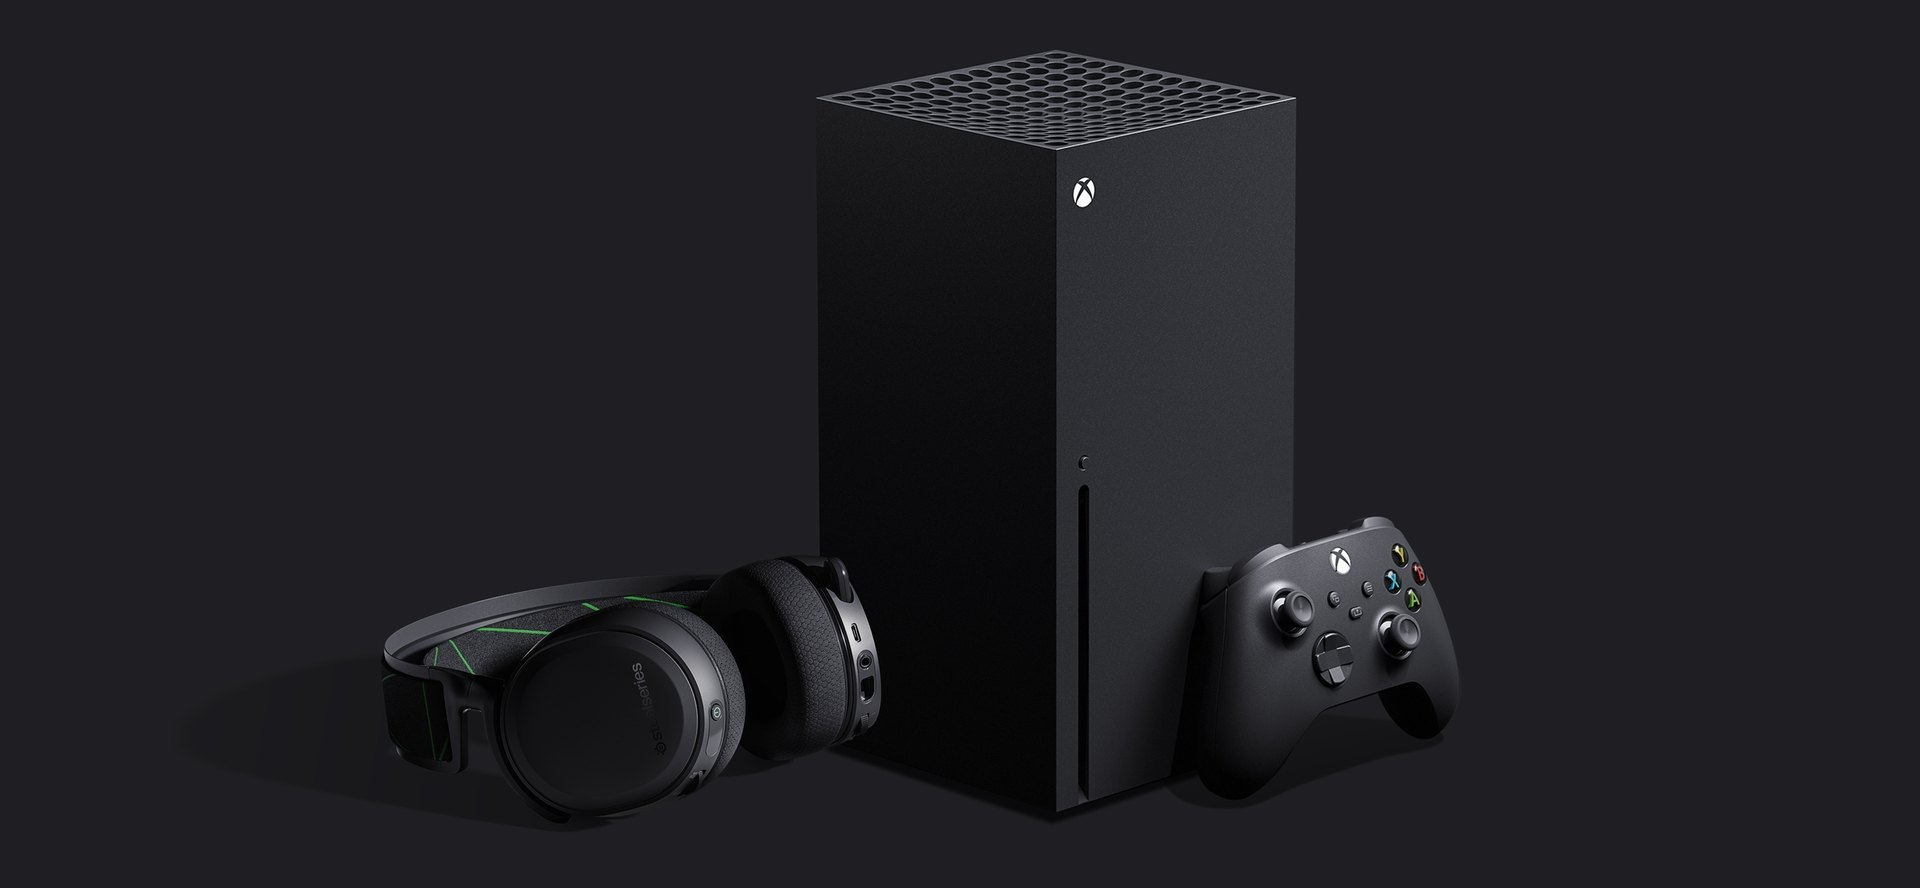 Image of the A7X leaning against the new Xbox Series X